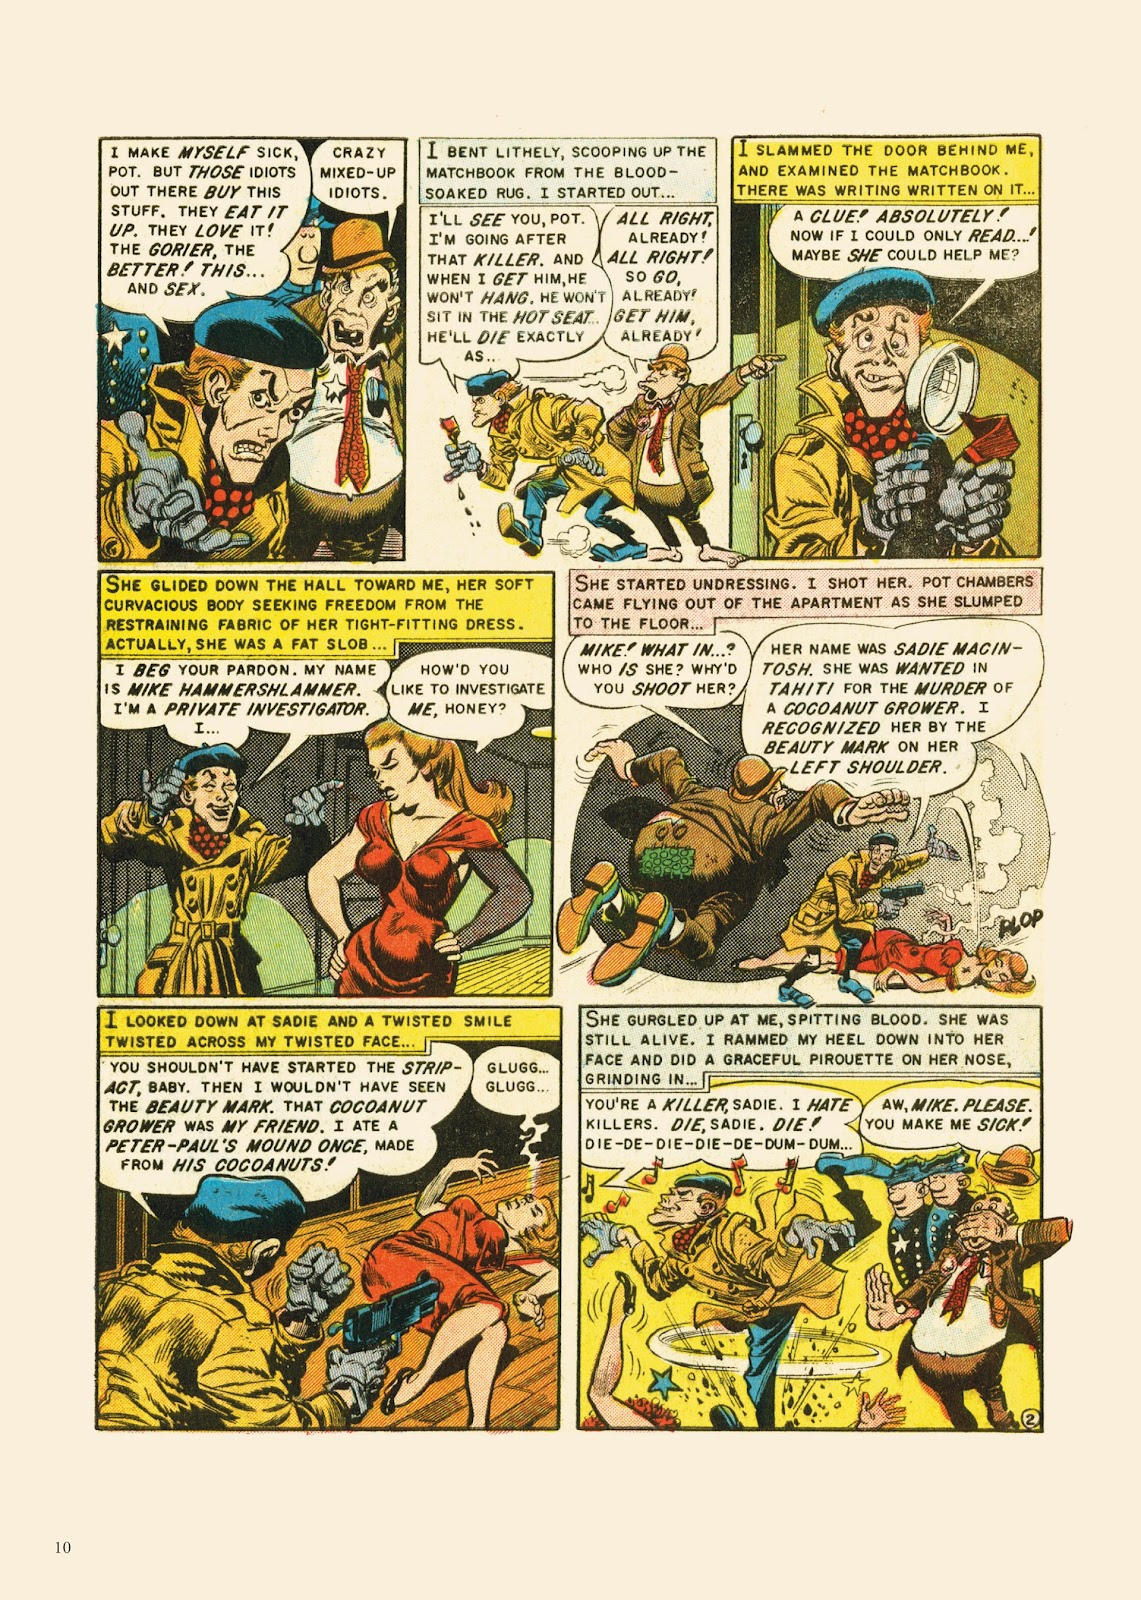 Read online Sincerest Form of Parody: The Best 1950s MAD-Inspired Satirical Comics comic -  Issue # TPB (Part 1) - 11